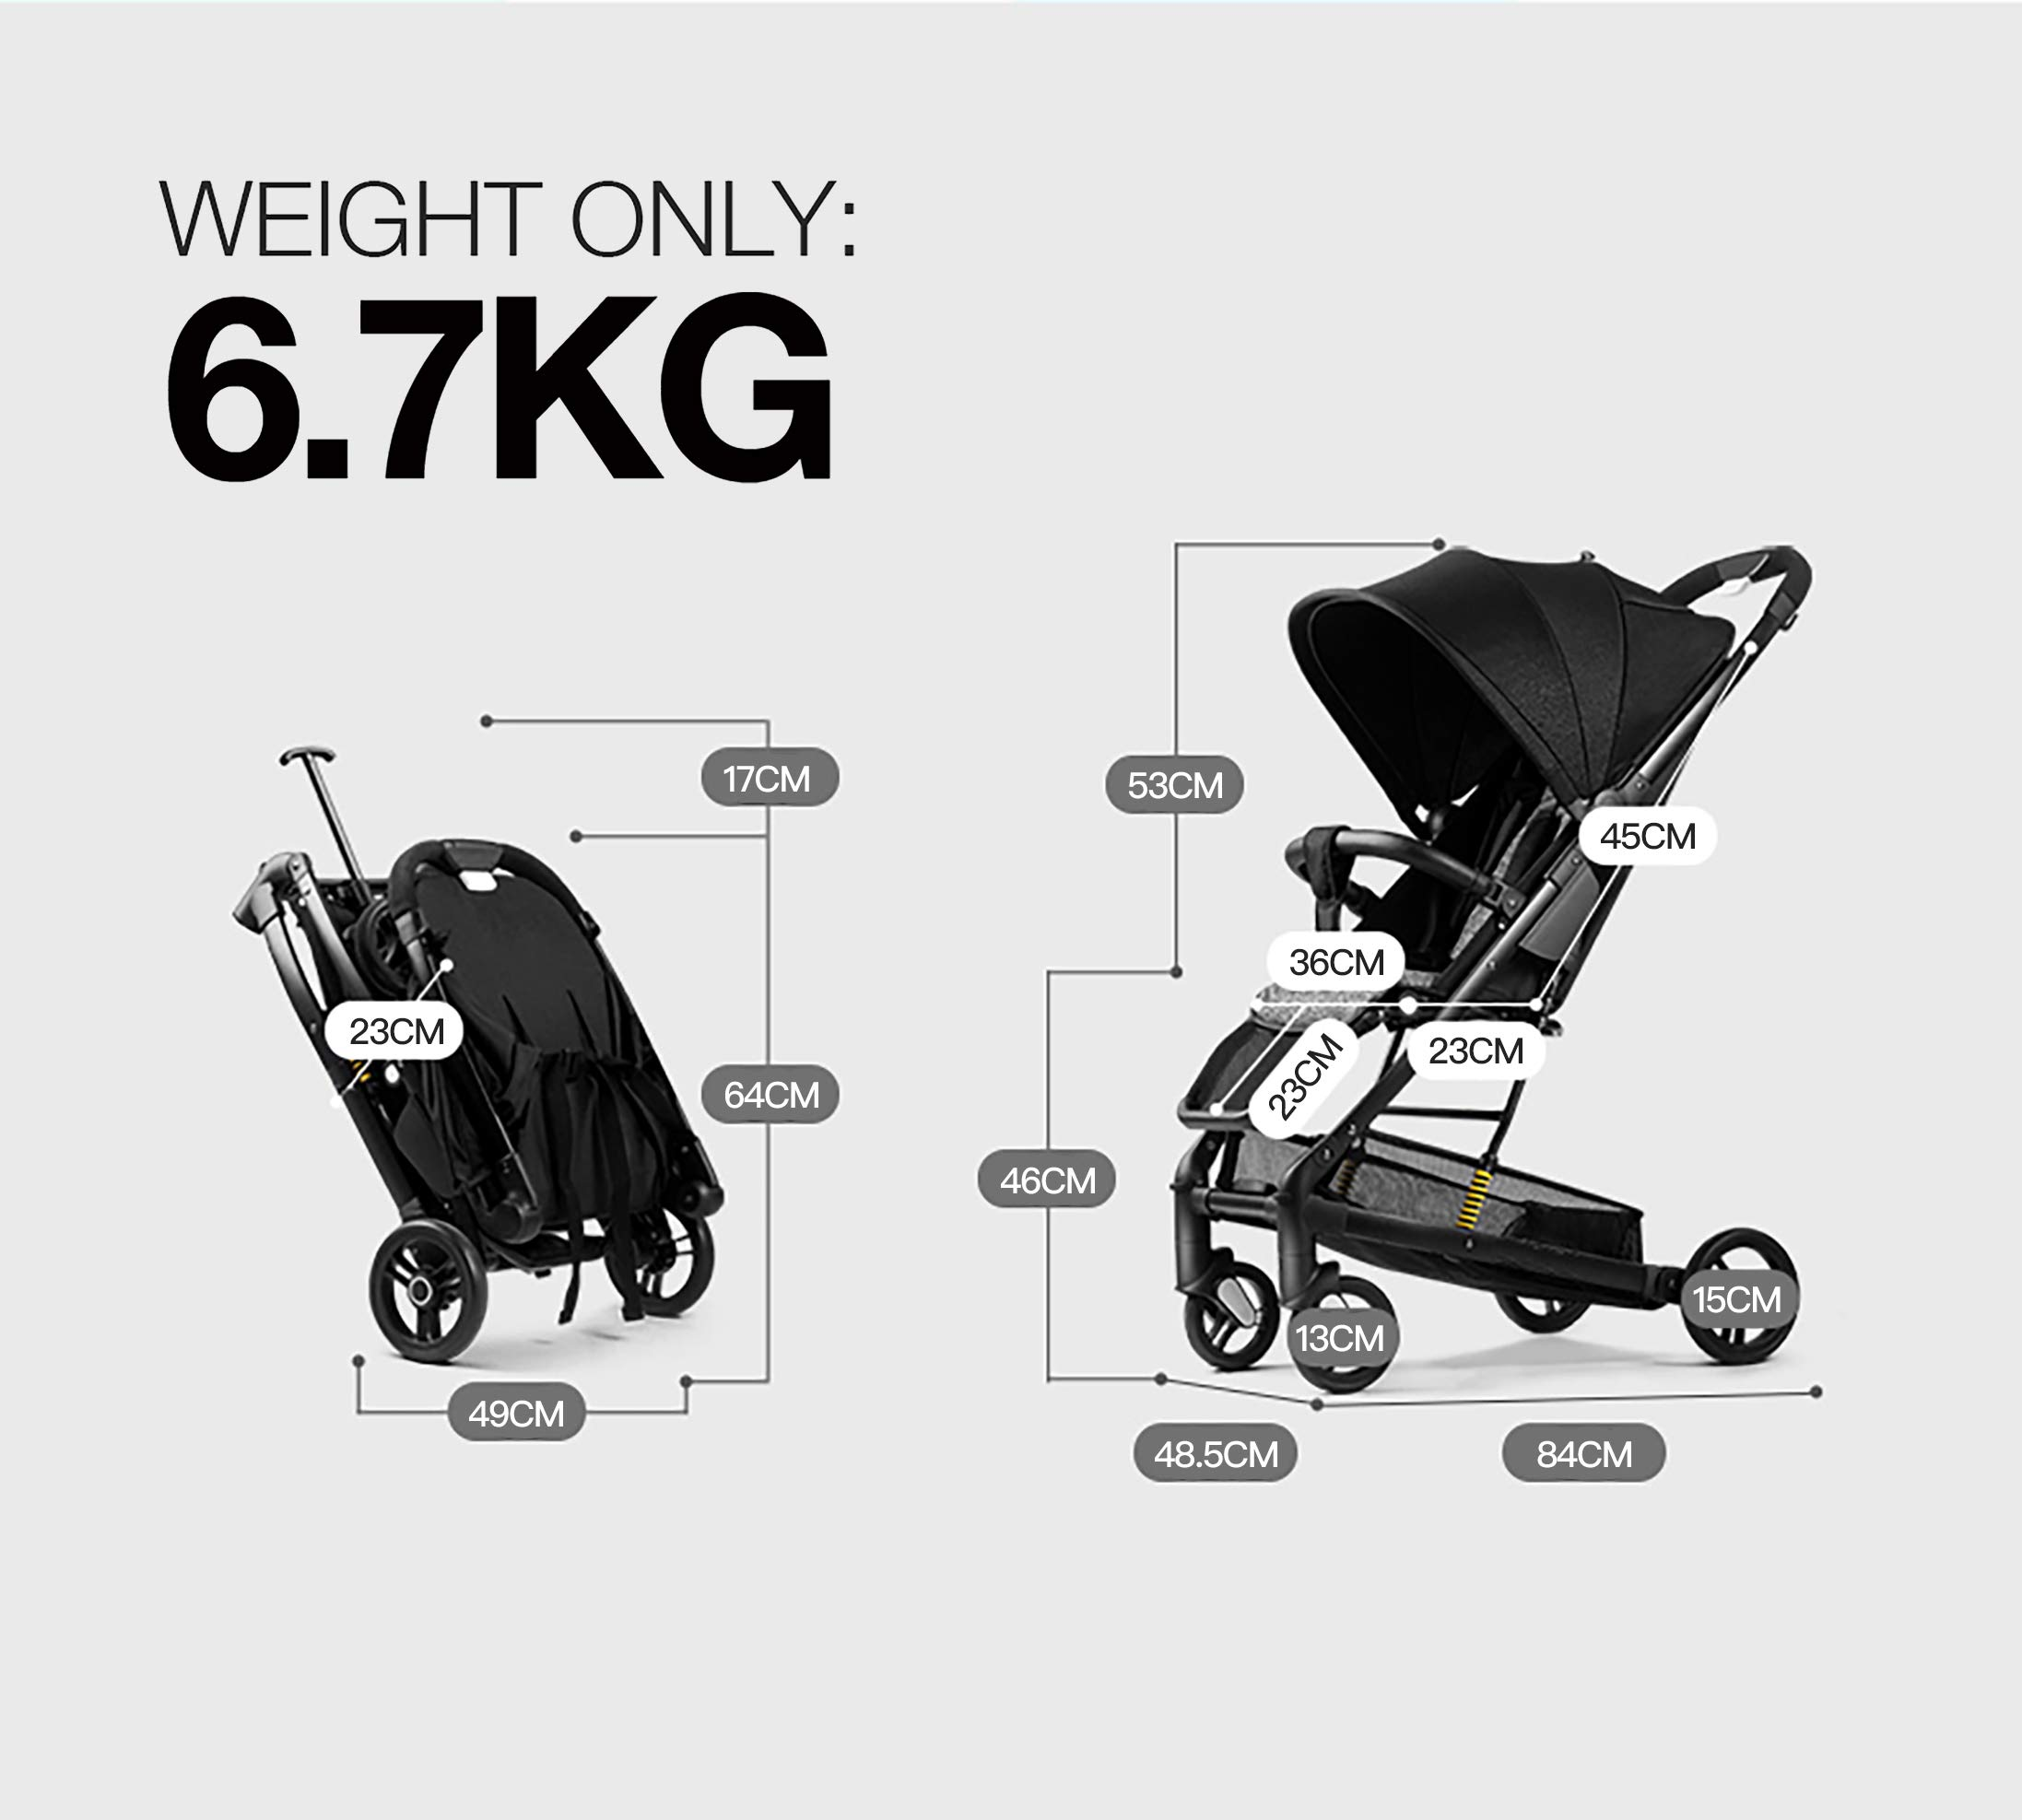 Allis Travel Stroller Baby Buggy Pram Lightweight Pushchair - Yellow Allis Baby Made according to British Standard EN1888, Fire Safety Regulations 1988. Lockable 360 swivel wheels, removable and suspension. Ultralight Design:Aluminium frame. Suitable from 6M - 4Ys ( upto 15Kg Approx) 6